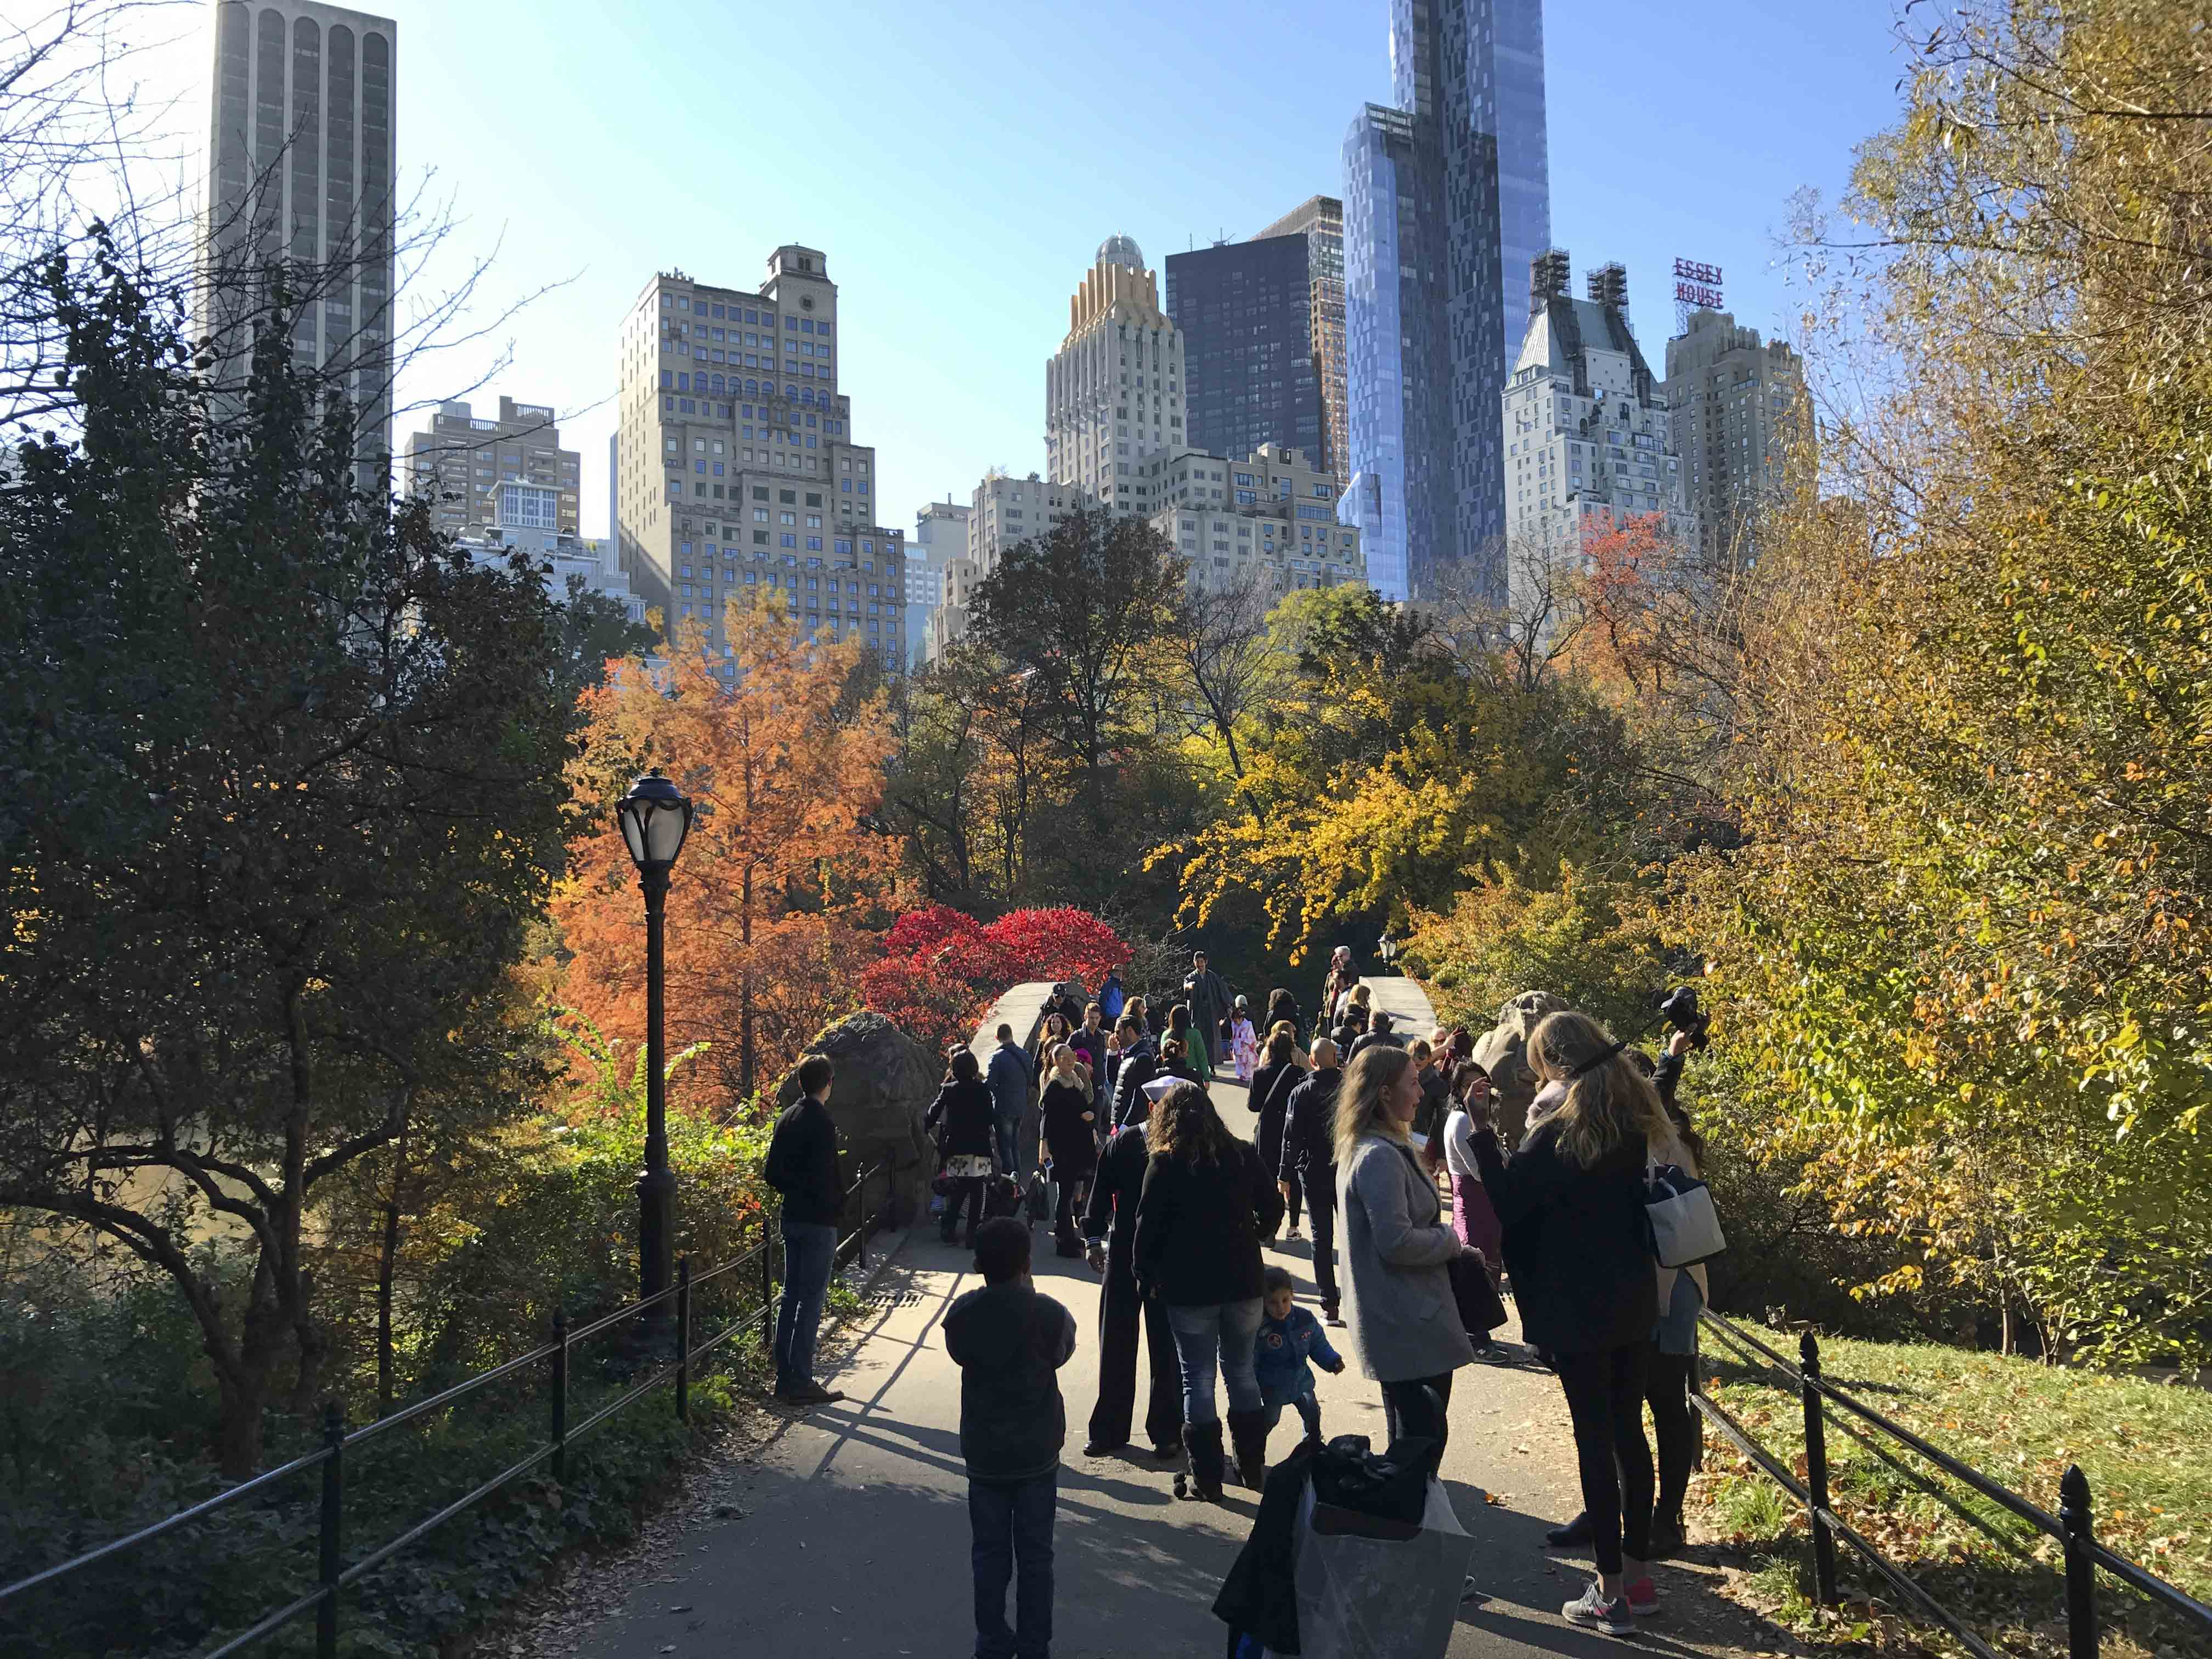 Though not Washington Square Park, Central Park provides a lovely panoramic view of the lake. It's perfect for those staying over during spring break and looking for a new park to explore in depth.